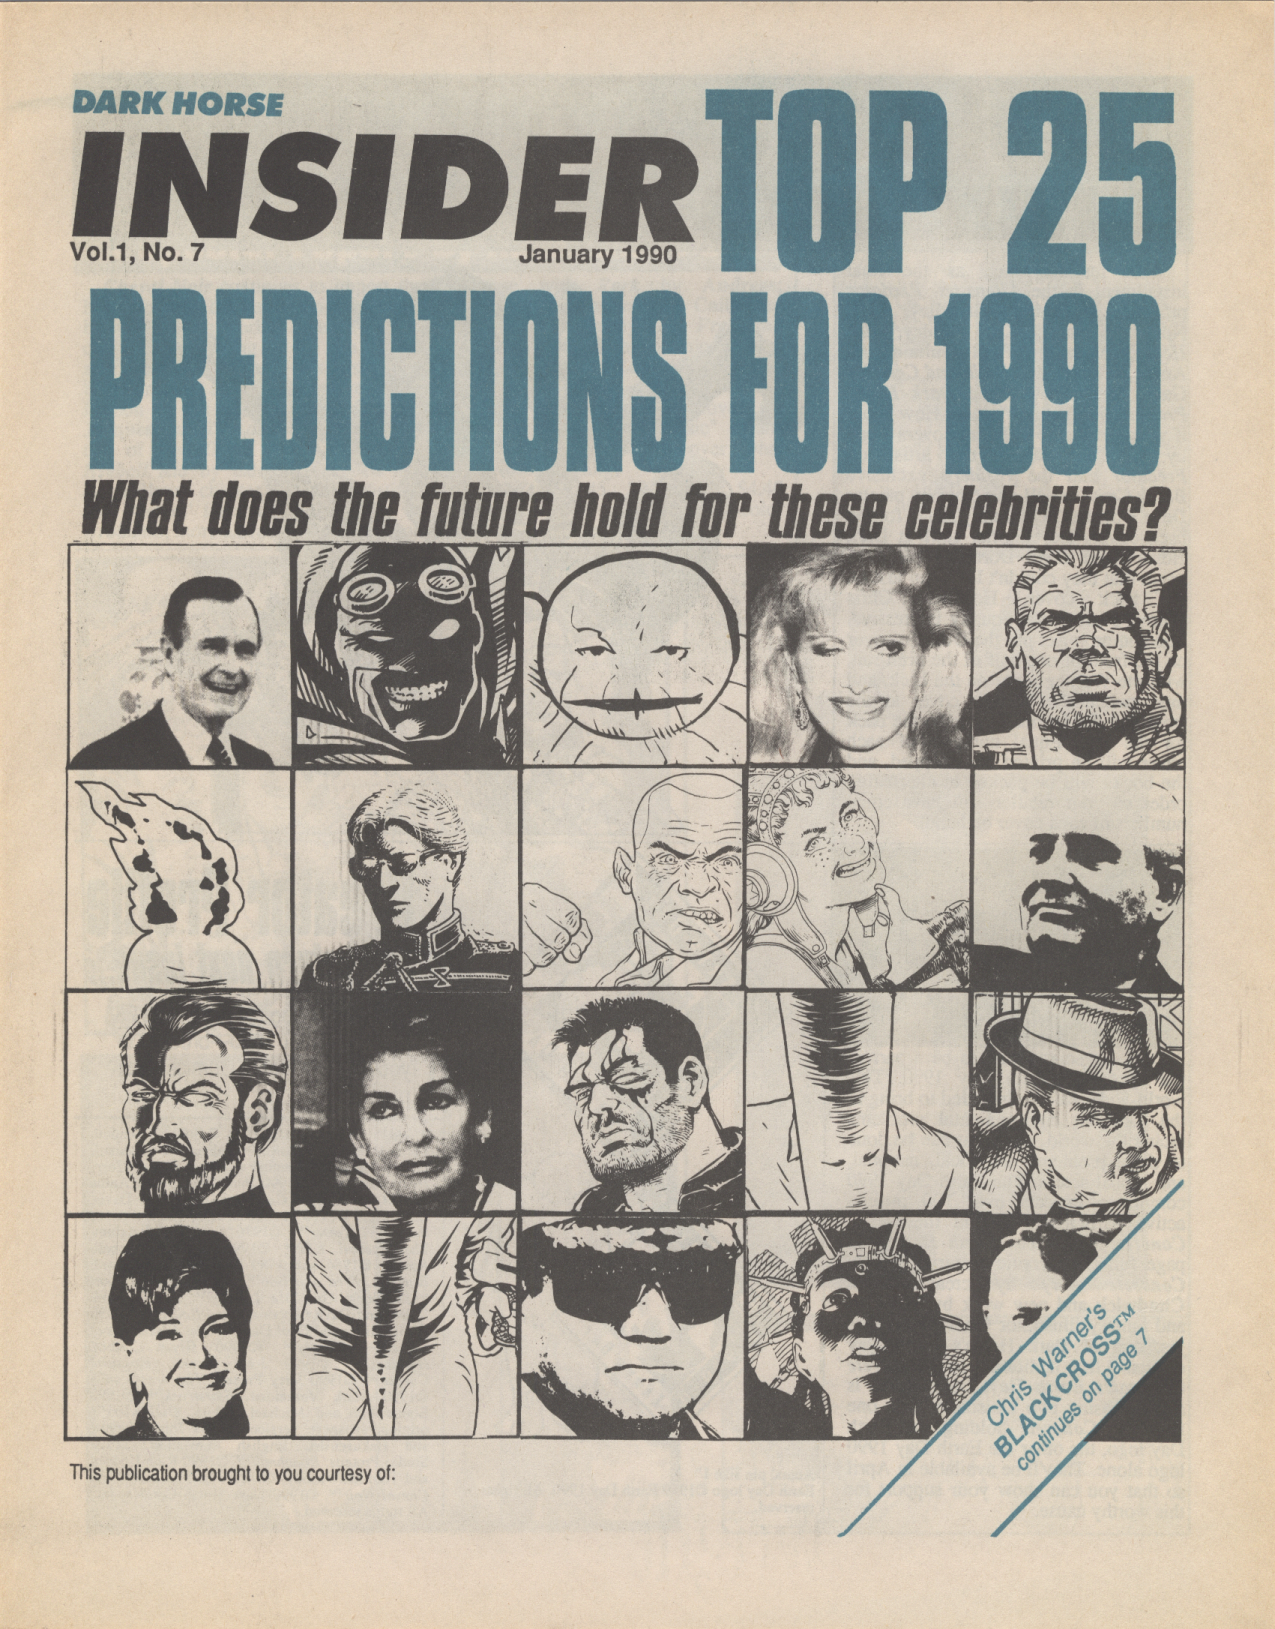 Time Capsule: Dark Horse Insider January 1990